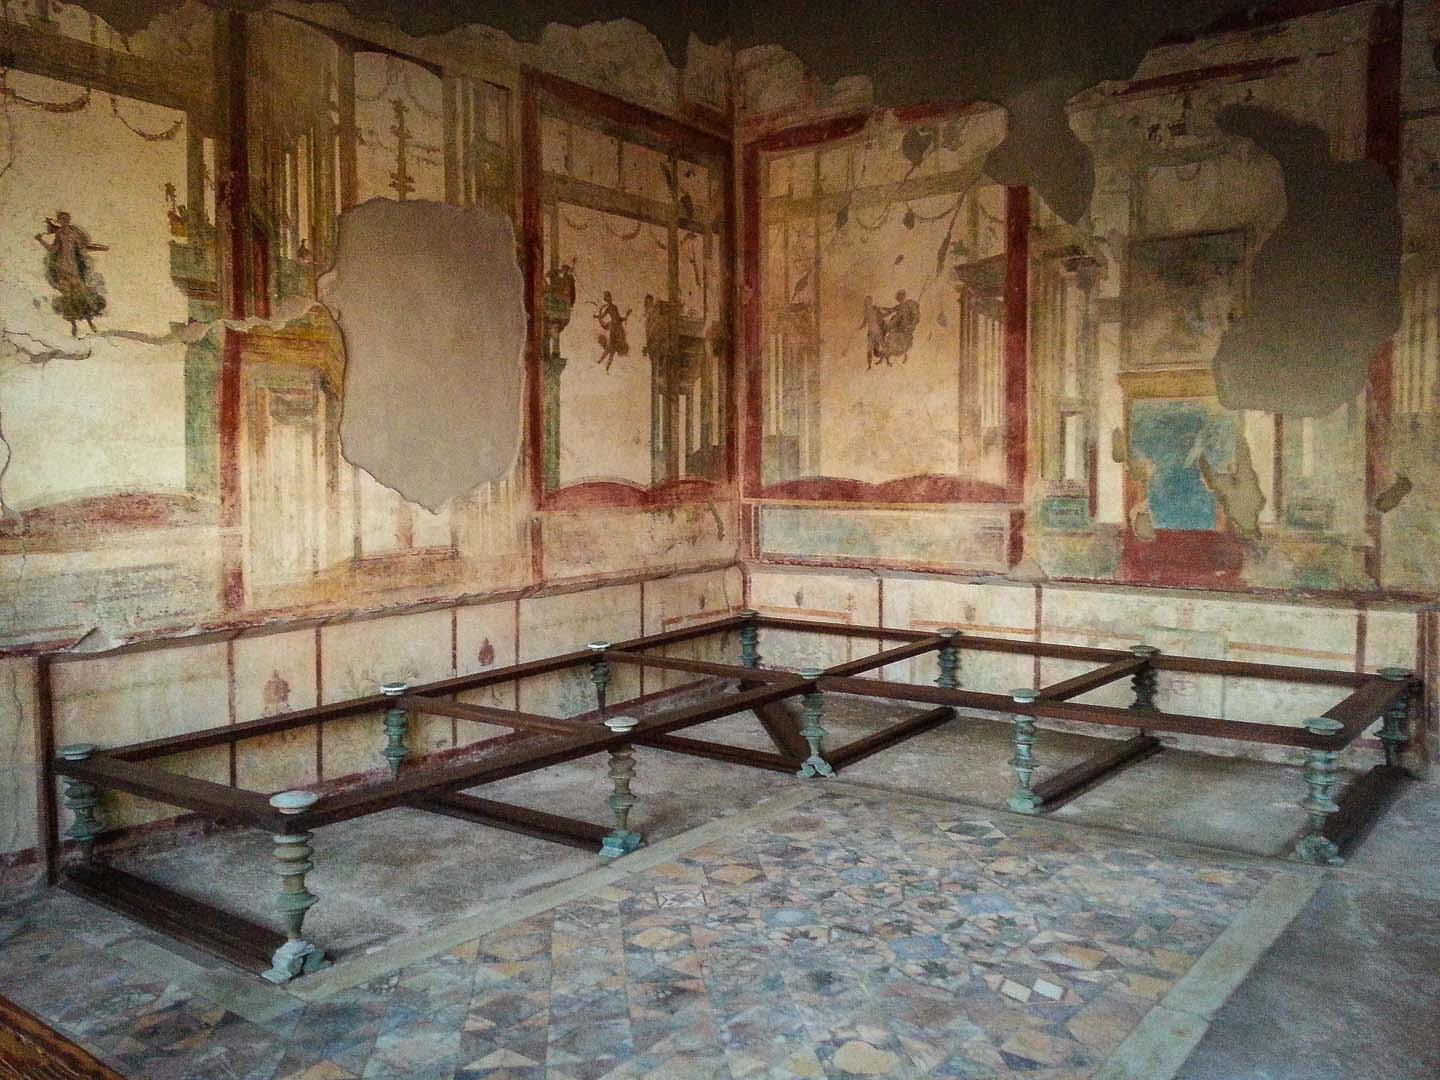 Reviews Of Tours By Locals In Pompeii